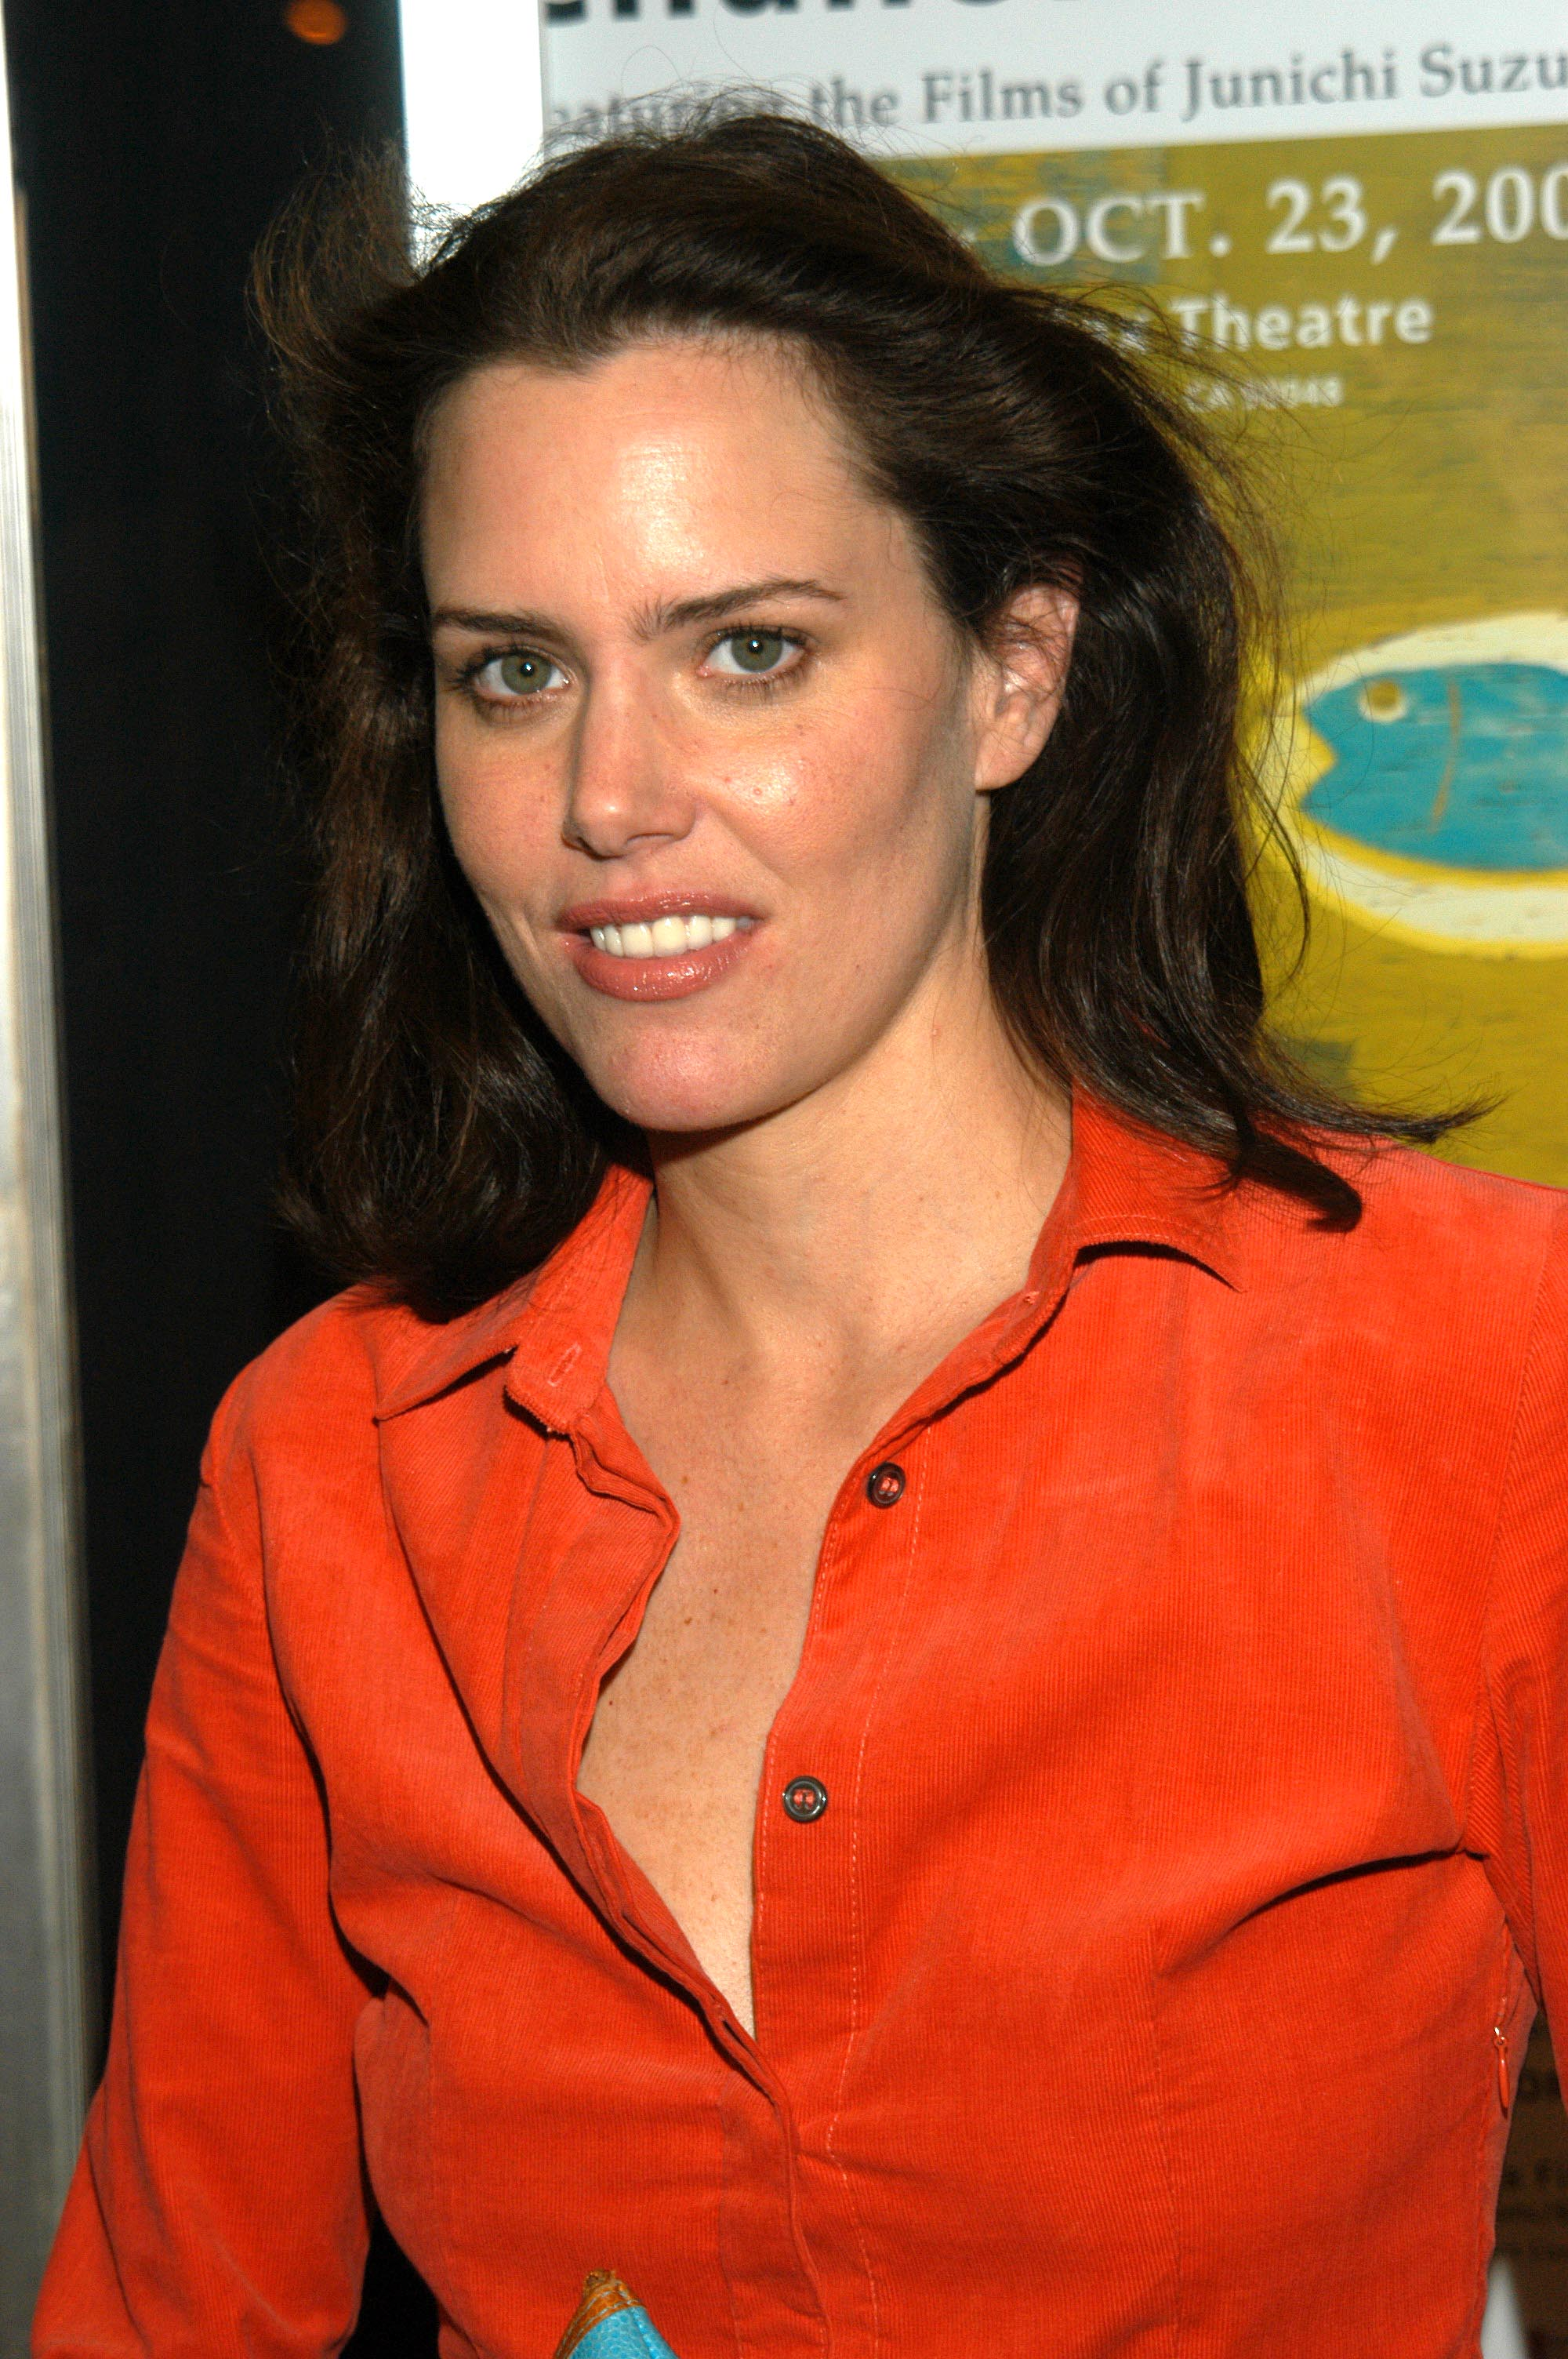 ione skye parentsione skye instagram, ione skye height, ione skye 2016, ione skye parents, ione skye scar tissue photo, ione skye, ione skye and john cusack, ione skye young, ione skye rachel papers, ione skye photos, ione skye imdb, ione skye movies, ione skye net worth, ione skye and anthony kiedis, ione skye adam horovitz, ione skye wayne world